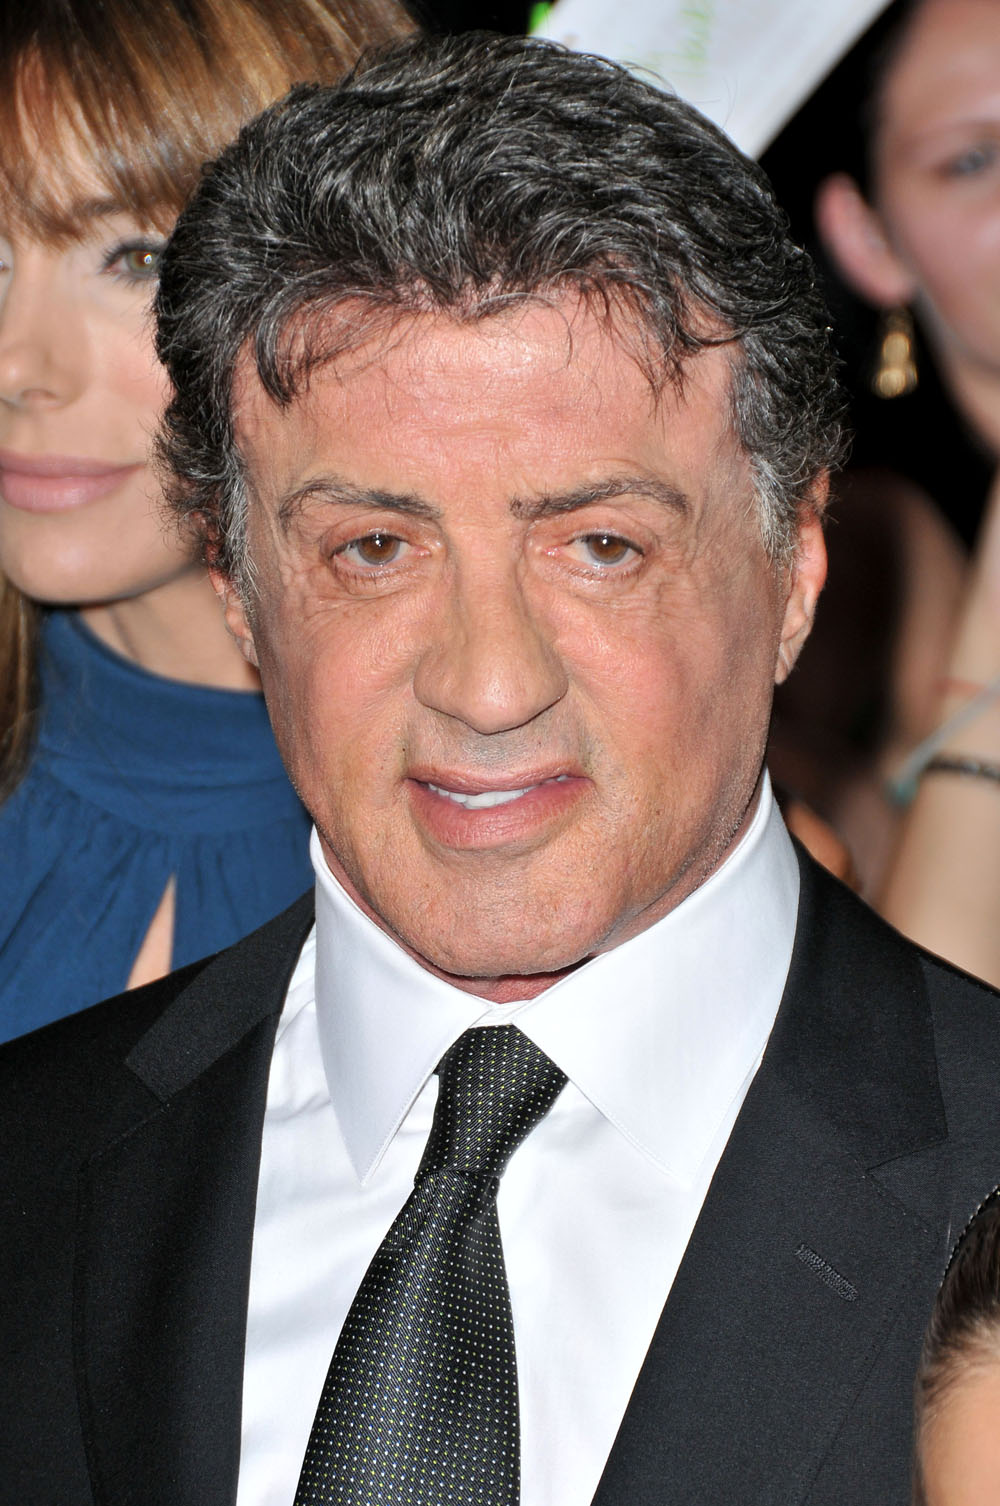 Sylvester Stallone Hairstyle Men Hairstyles Men Hair